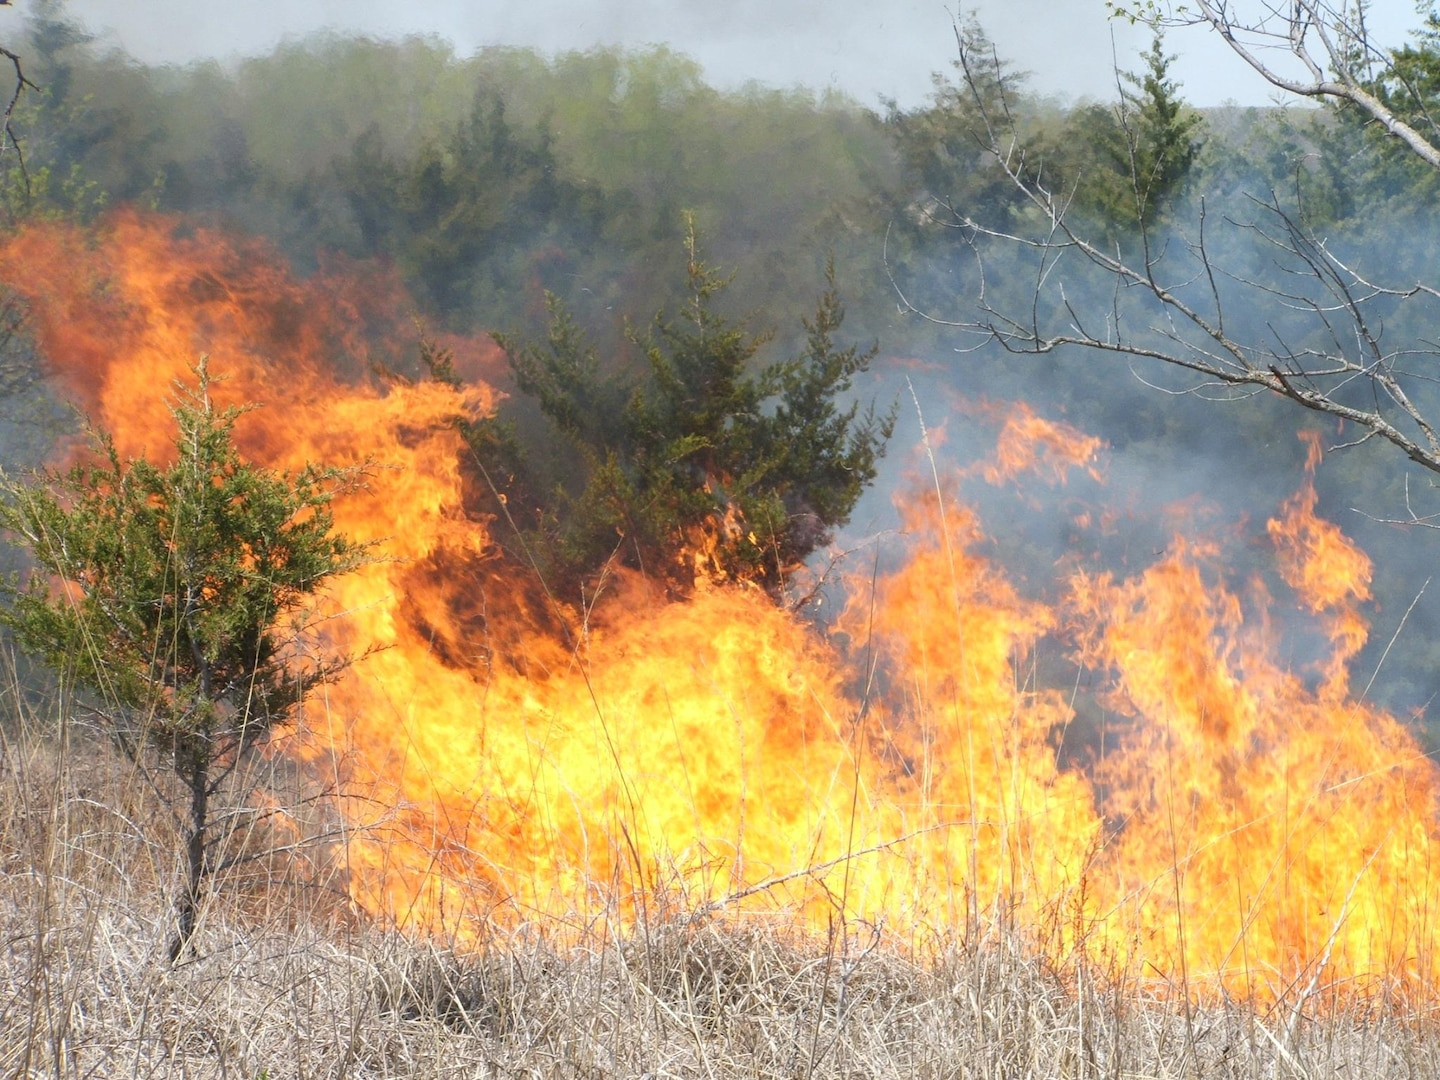 A fire with tall flames burns grasslands and a few small trees.